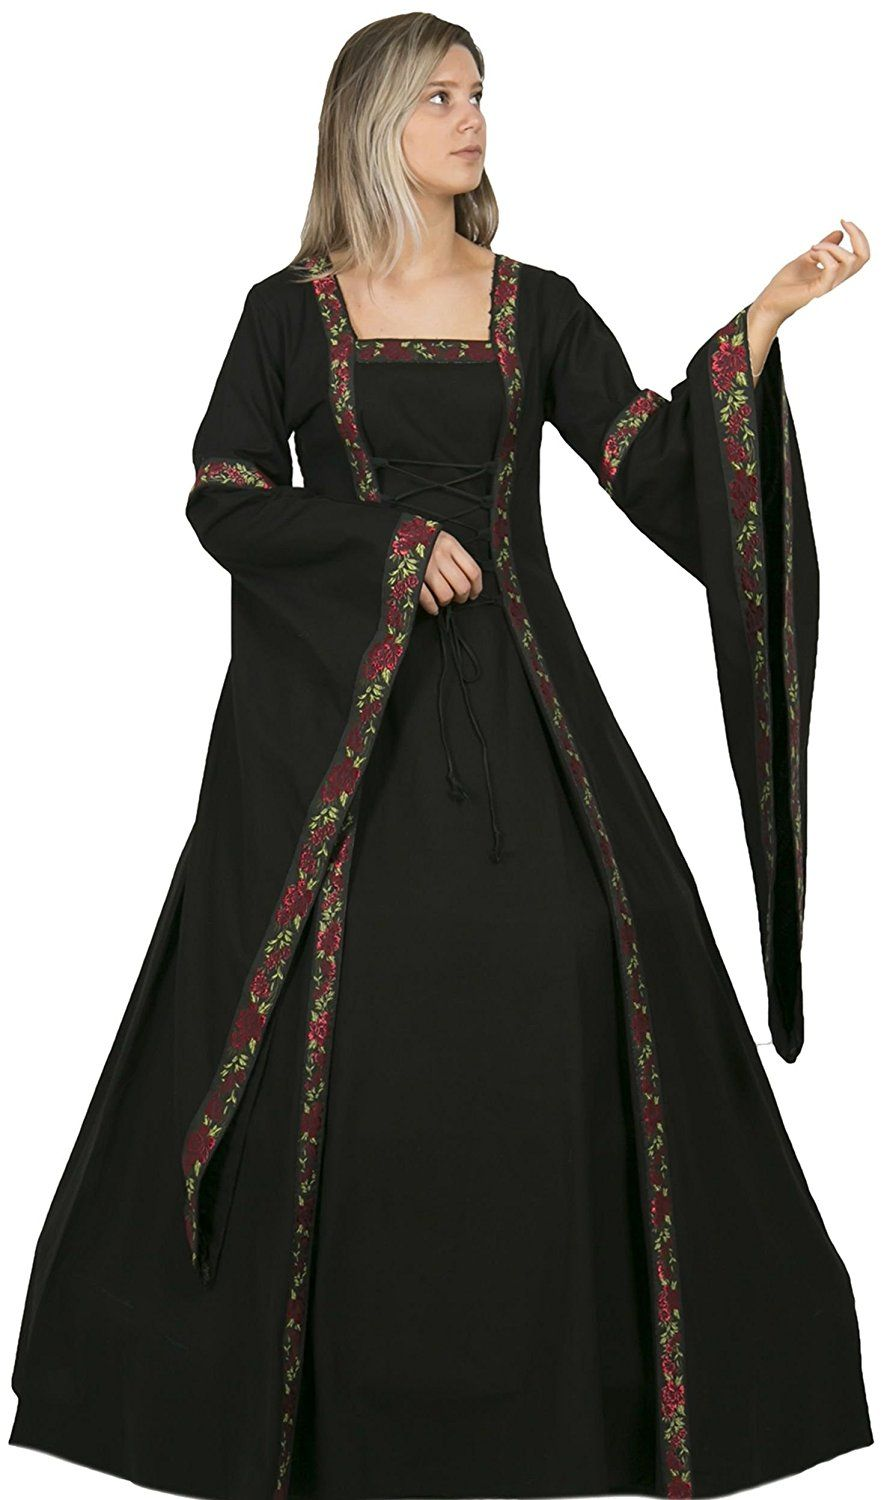 4790c91250 Women s Medieval Upper-Class Black Red Floral Trim Trumpet Sleeve Dress -  DeluxeAdultCostumes.com